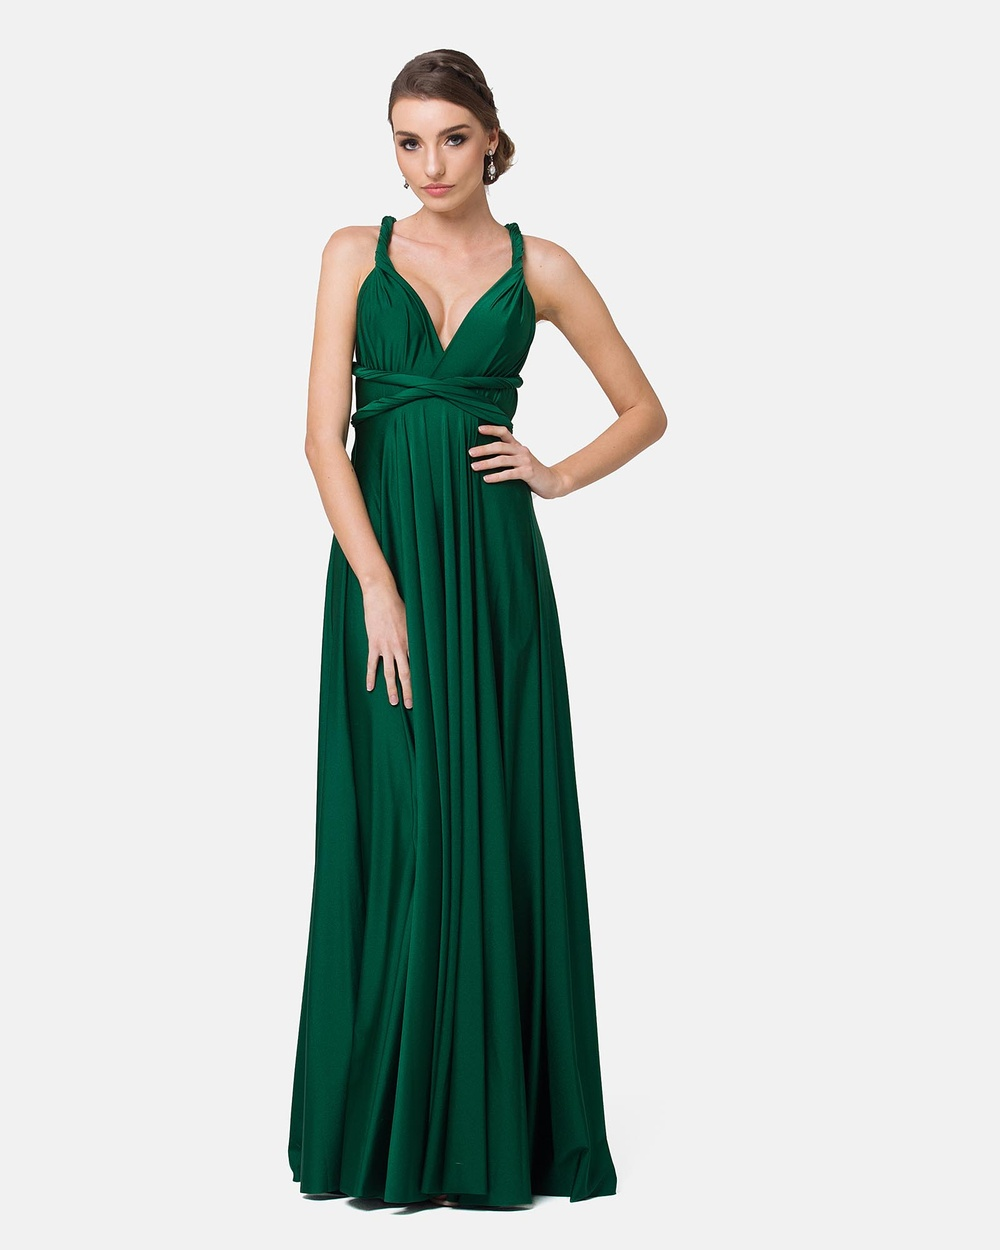 Tania Olsen Designs Emerald Wrap Dress